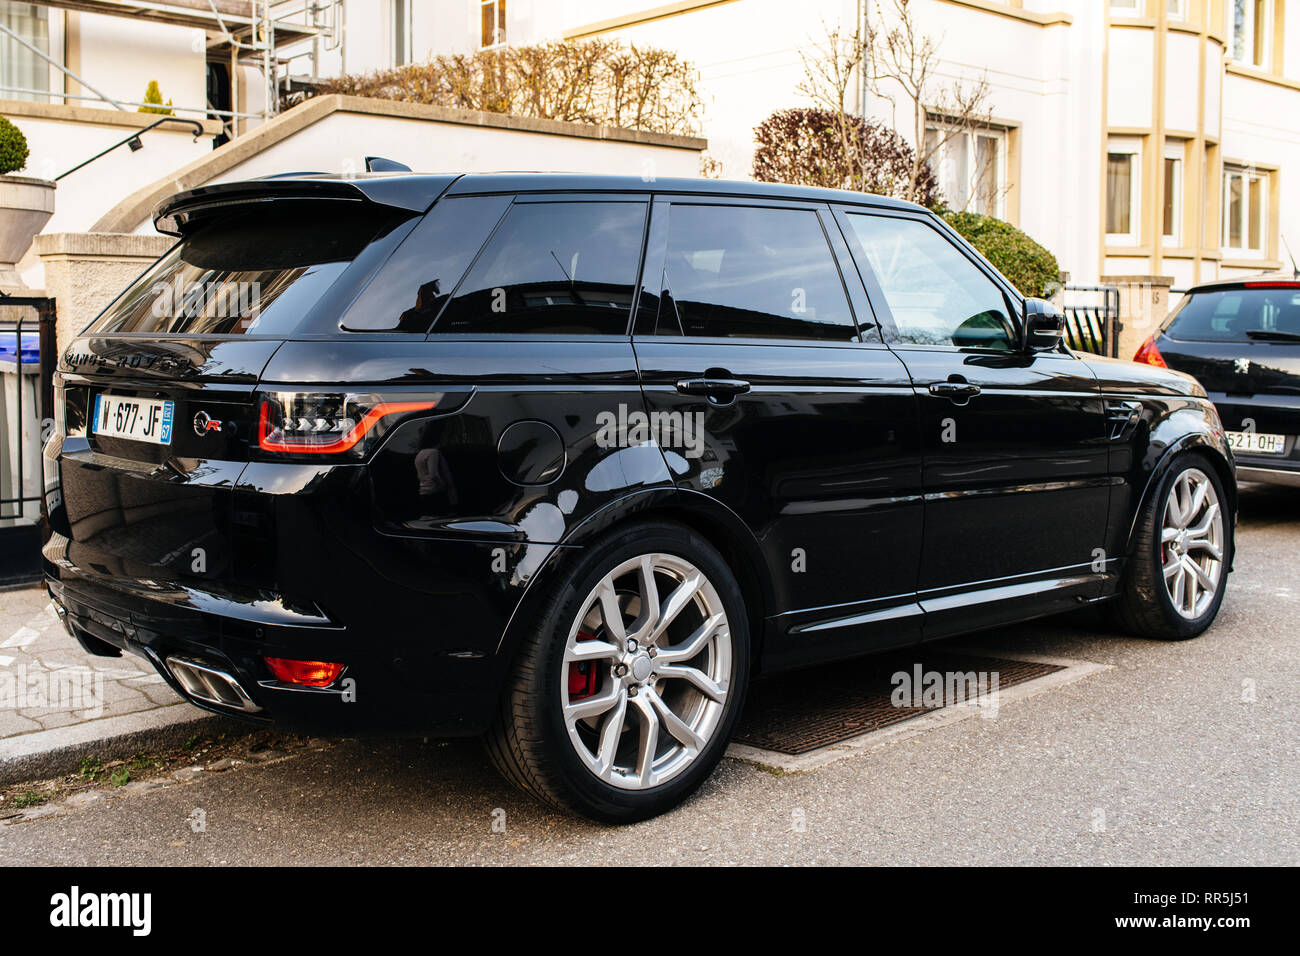 Strasbourg France Apr 8 2018 Black Luxury Land Rover Range Rover Sport Svr Parked On The Street Stock Photo Alamy